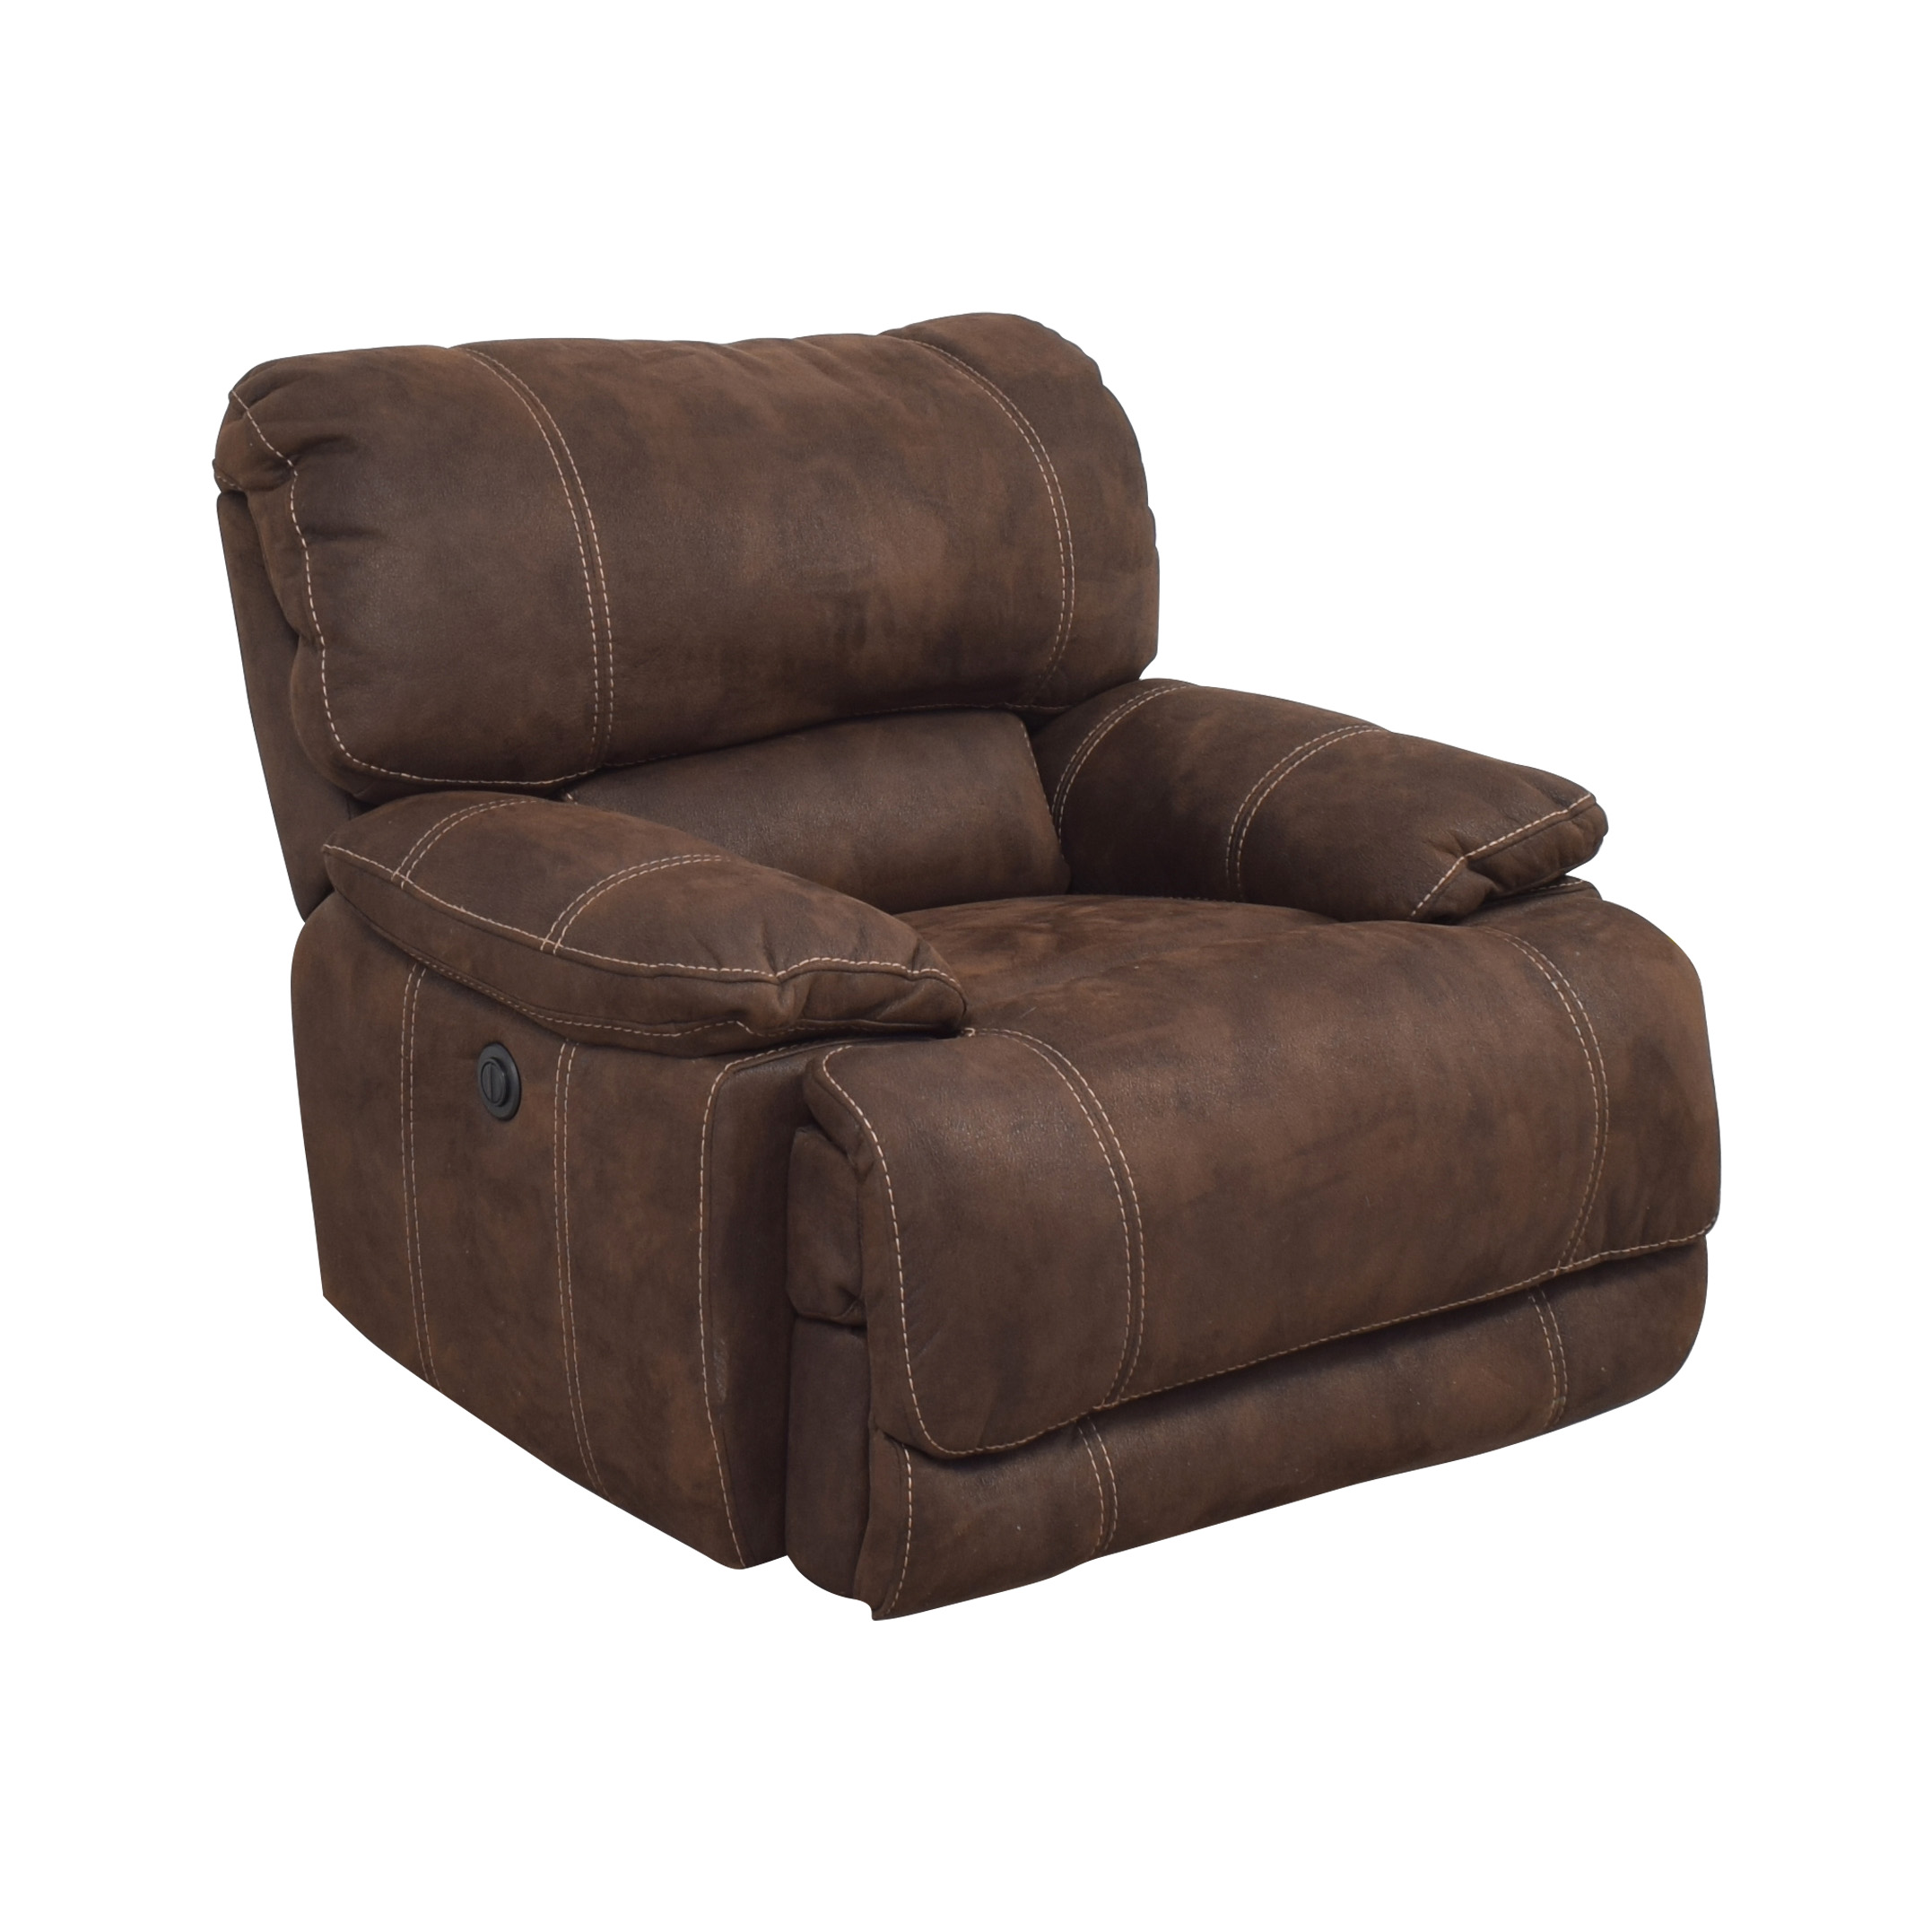 shop Macy's Upholstered Recliner Macy's Recliners